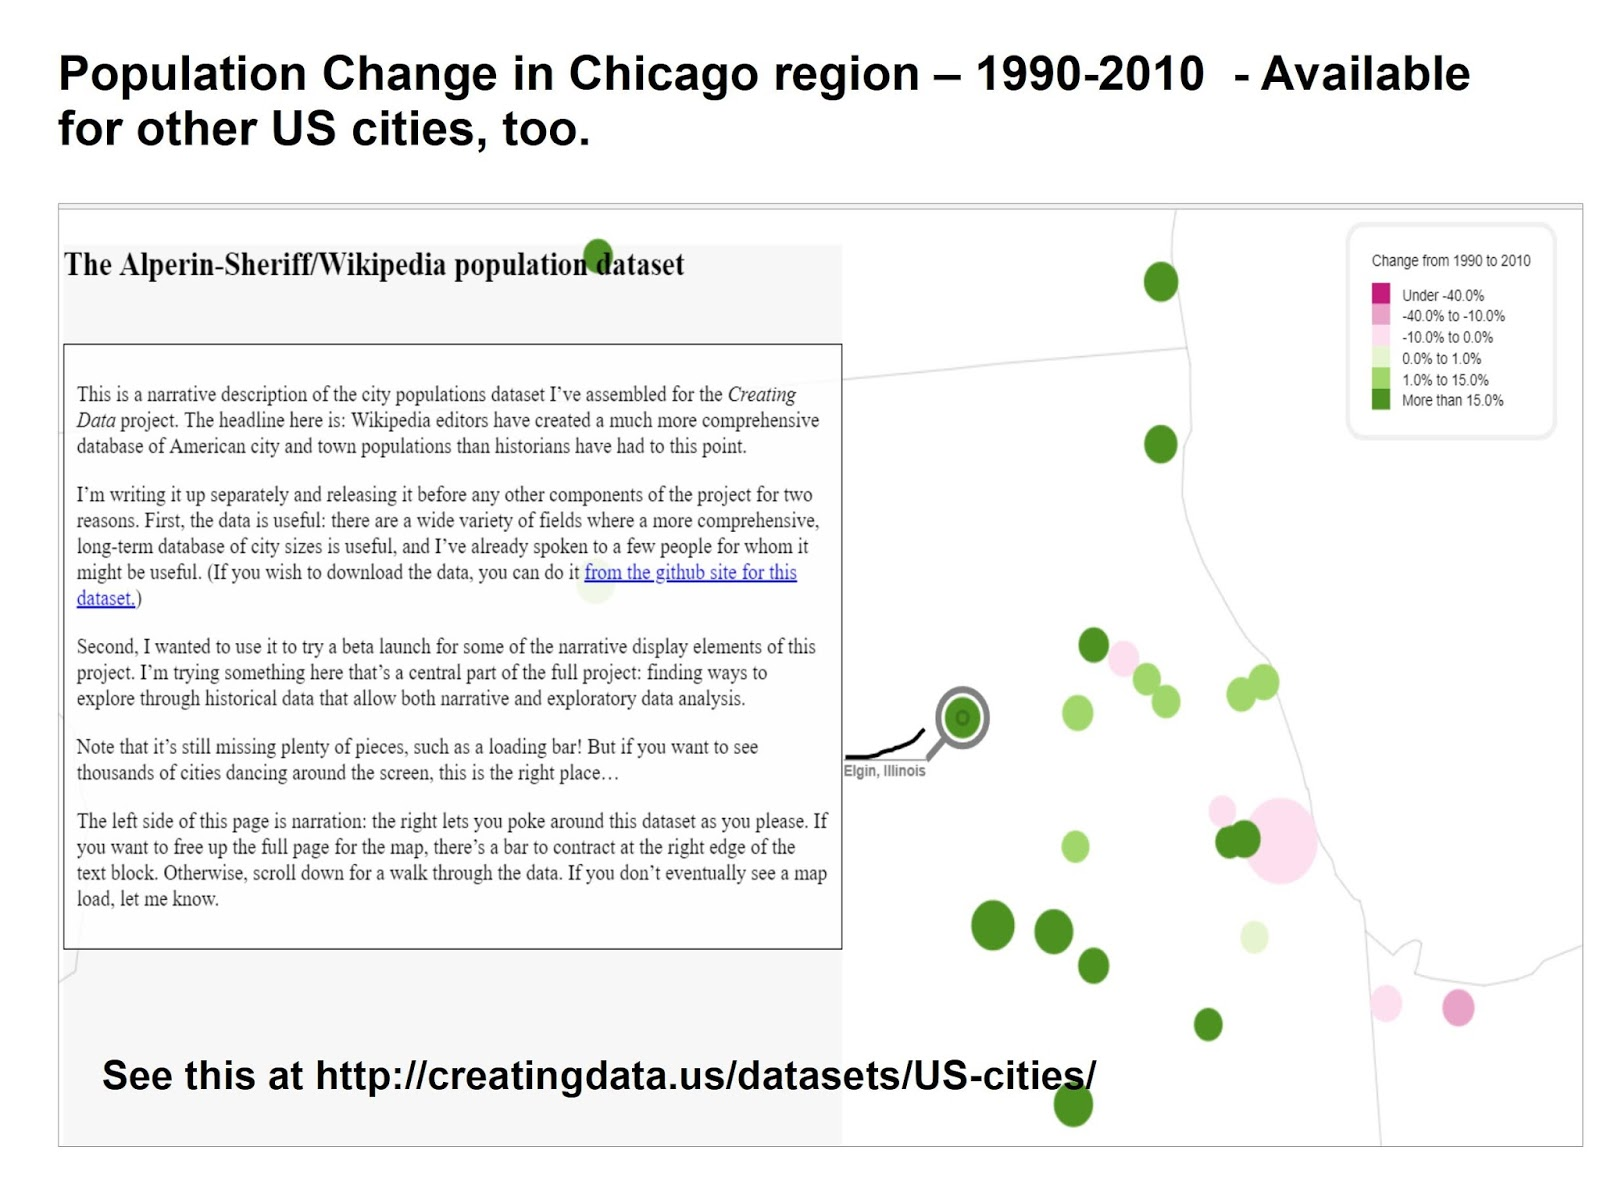 here s another map that i learned about from my chihacknight network this shows population changes in us cities from 1990 to 2010